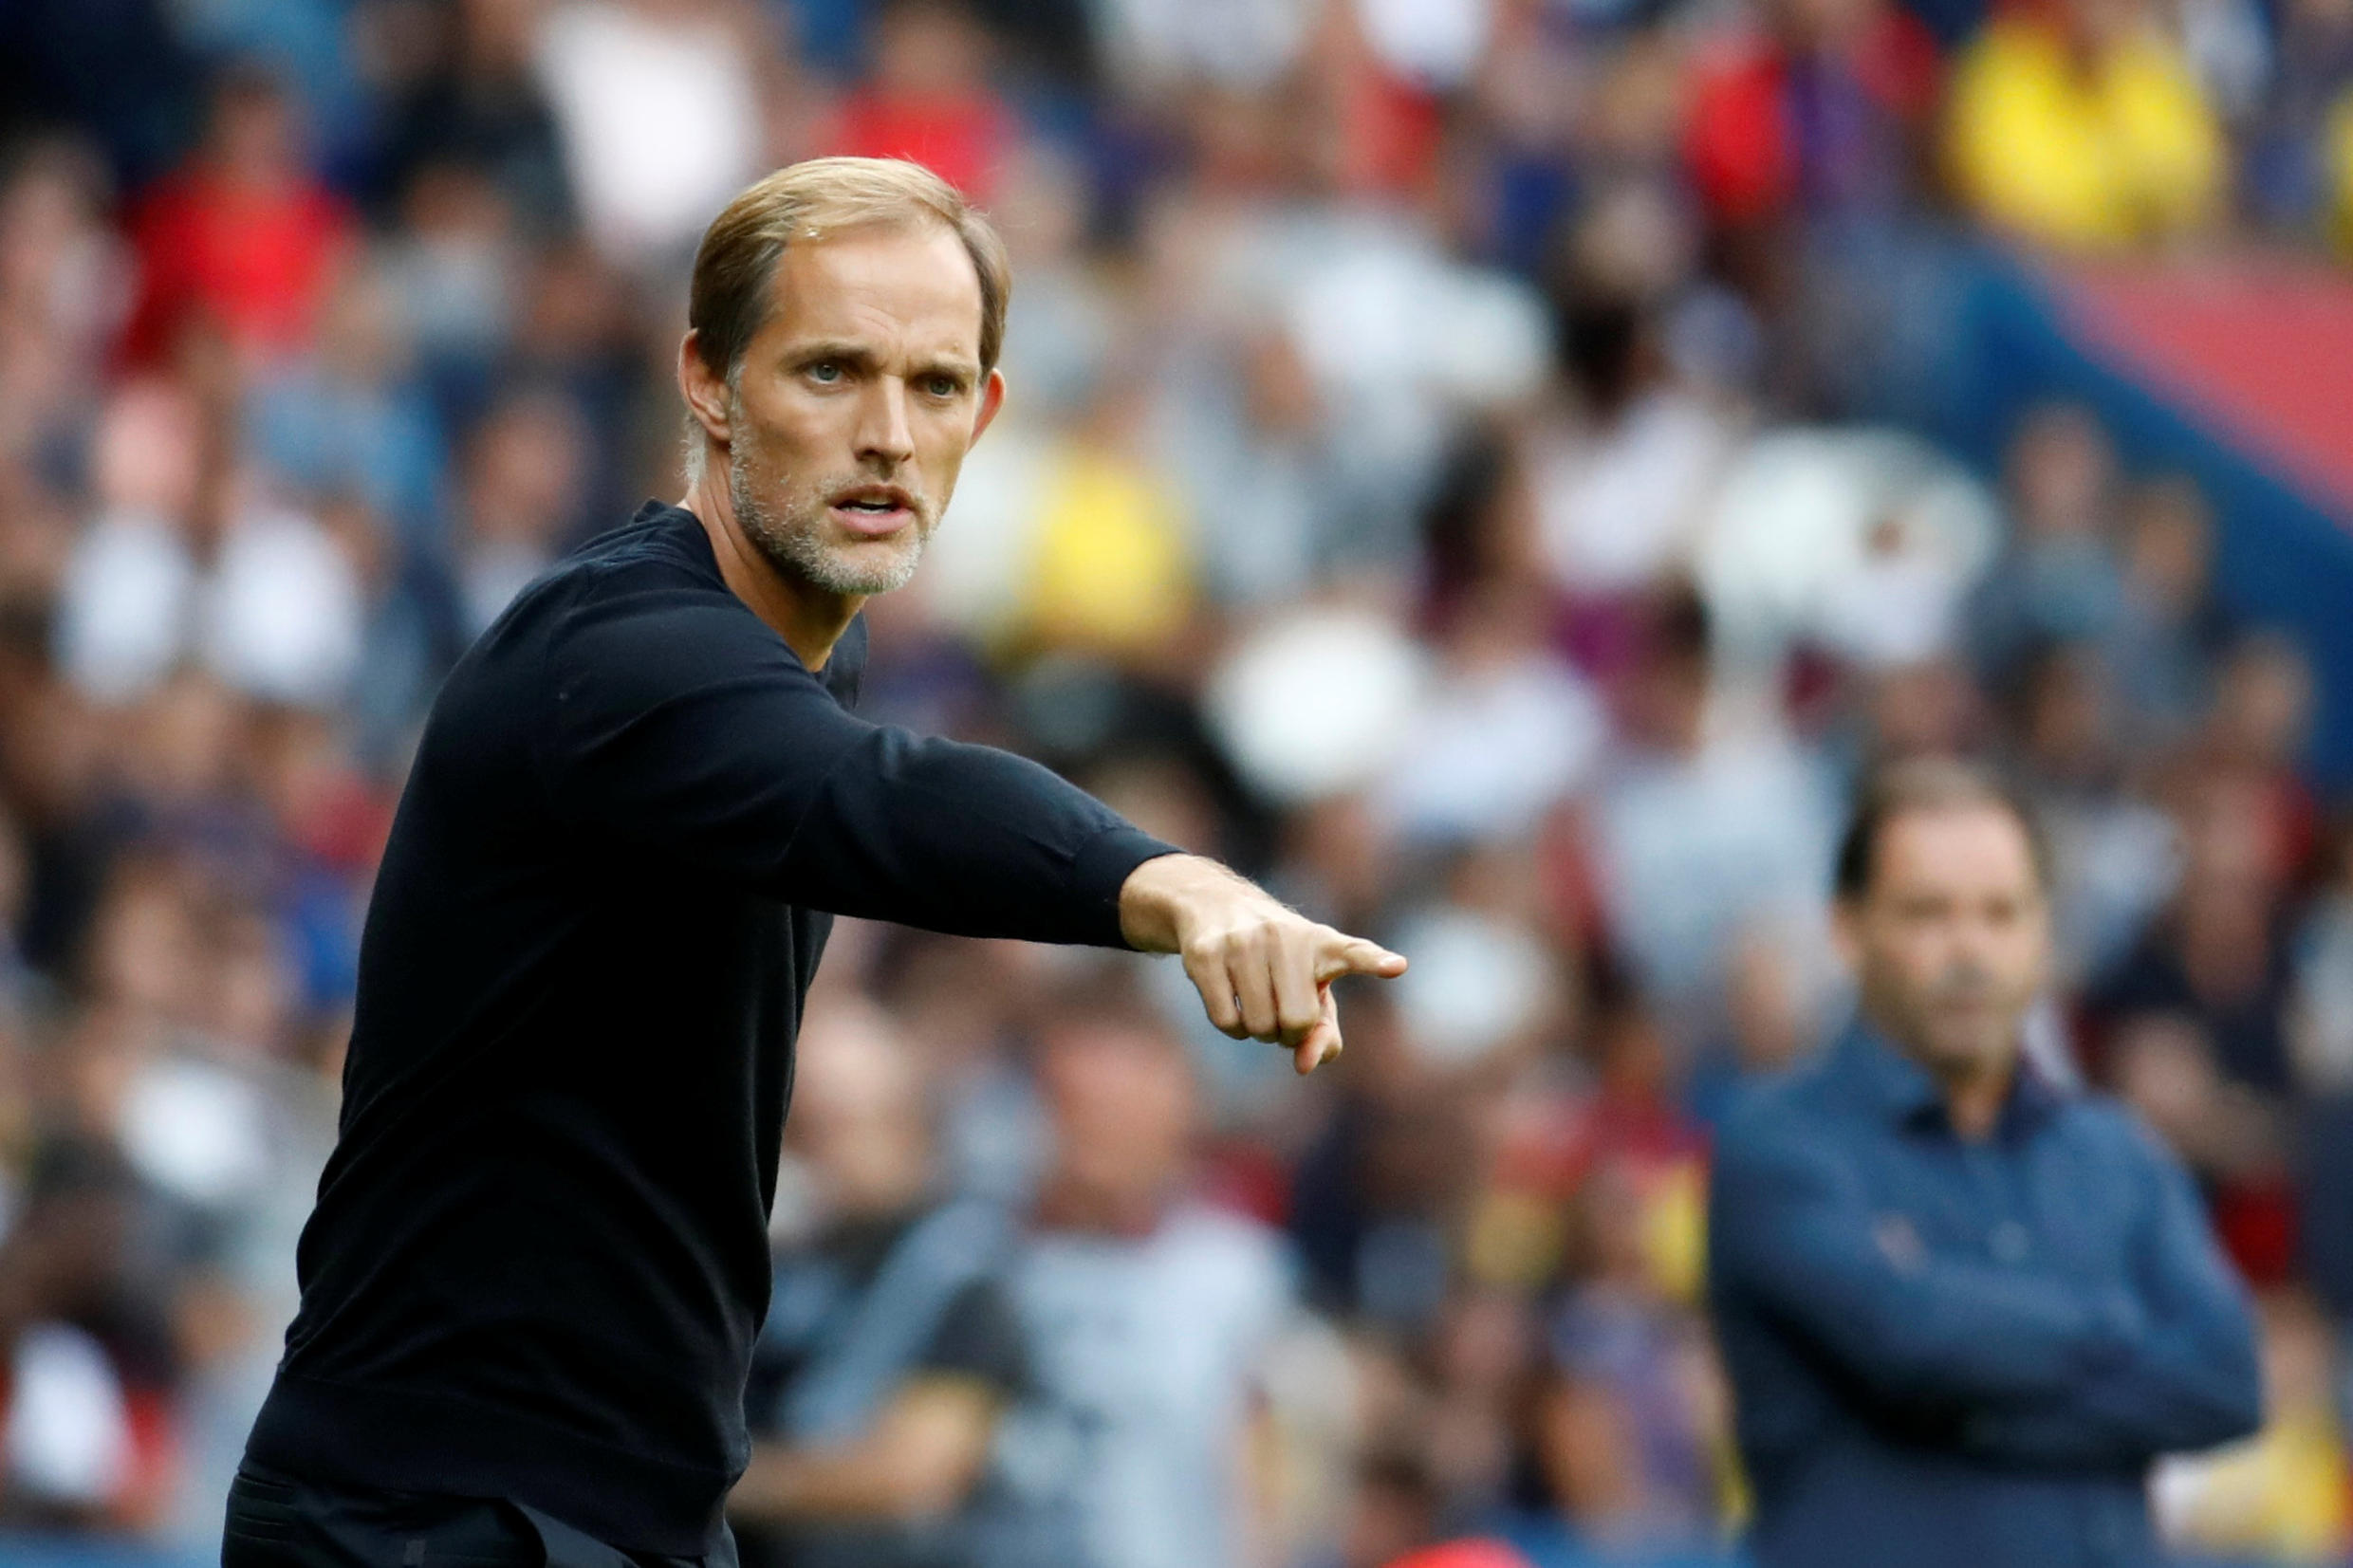 Thomas Tuchel took over at PSG in July 2018 from Unai Emery.